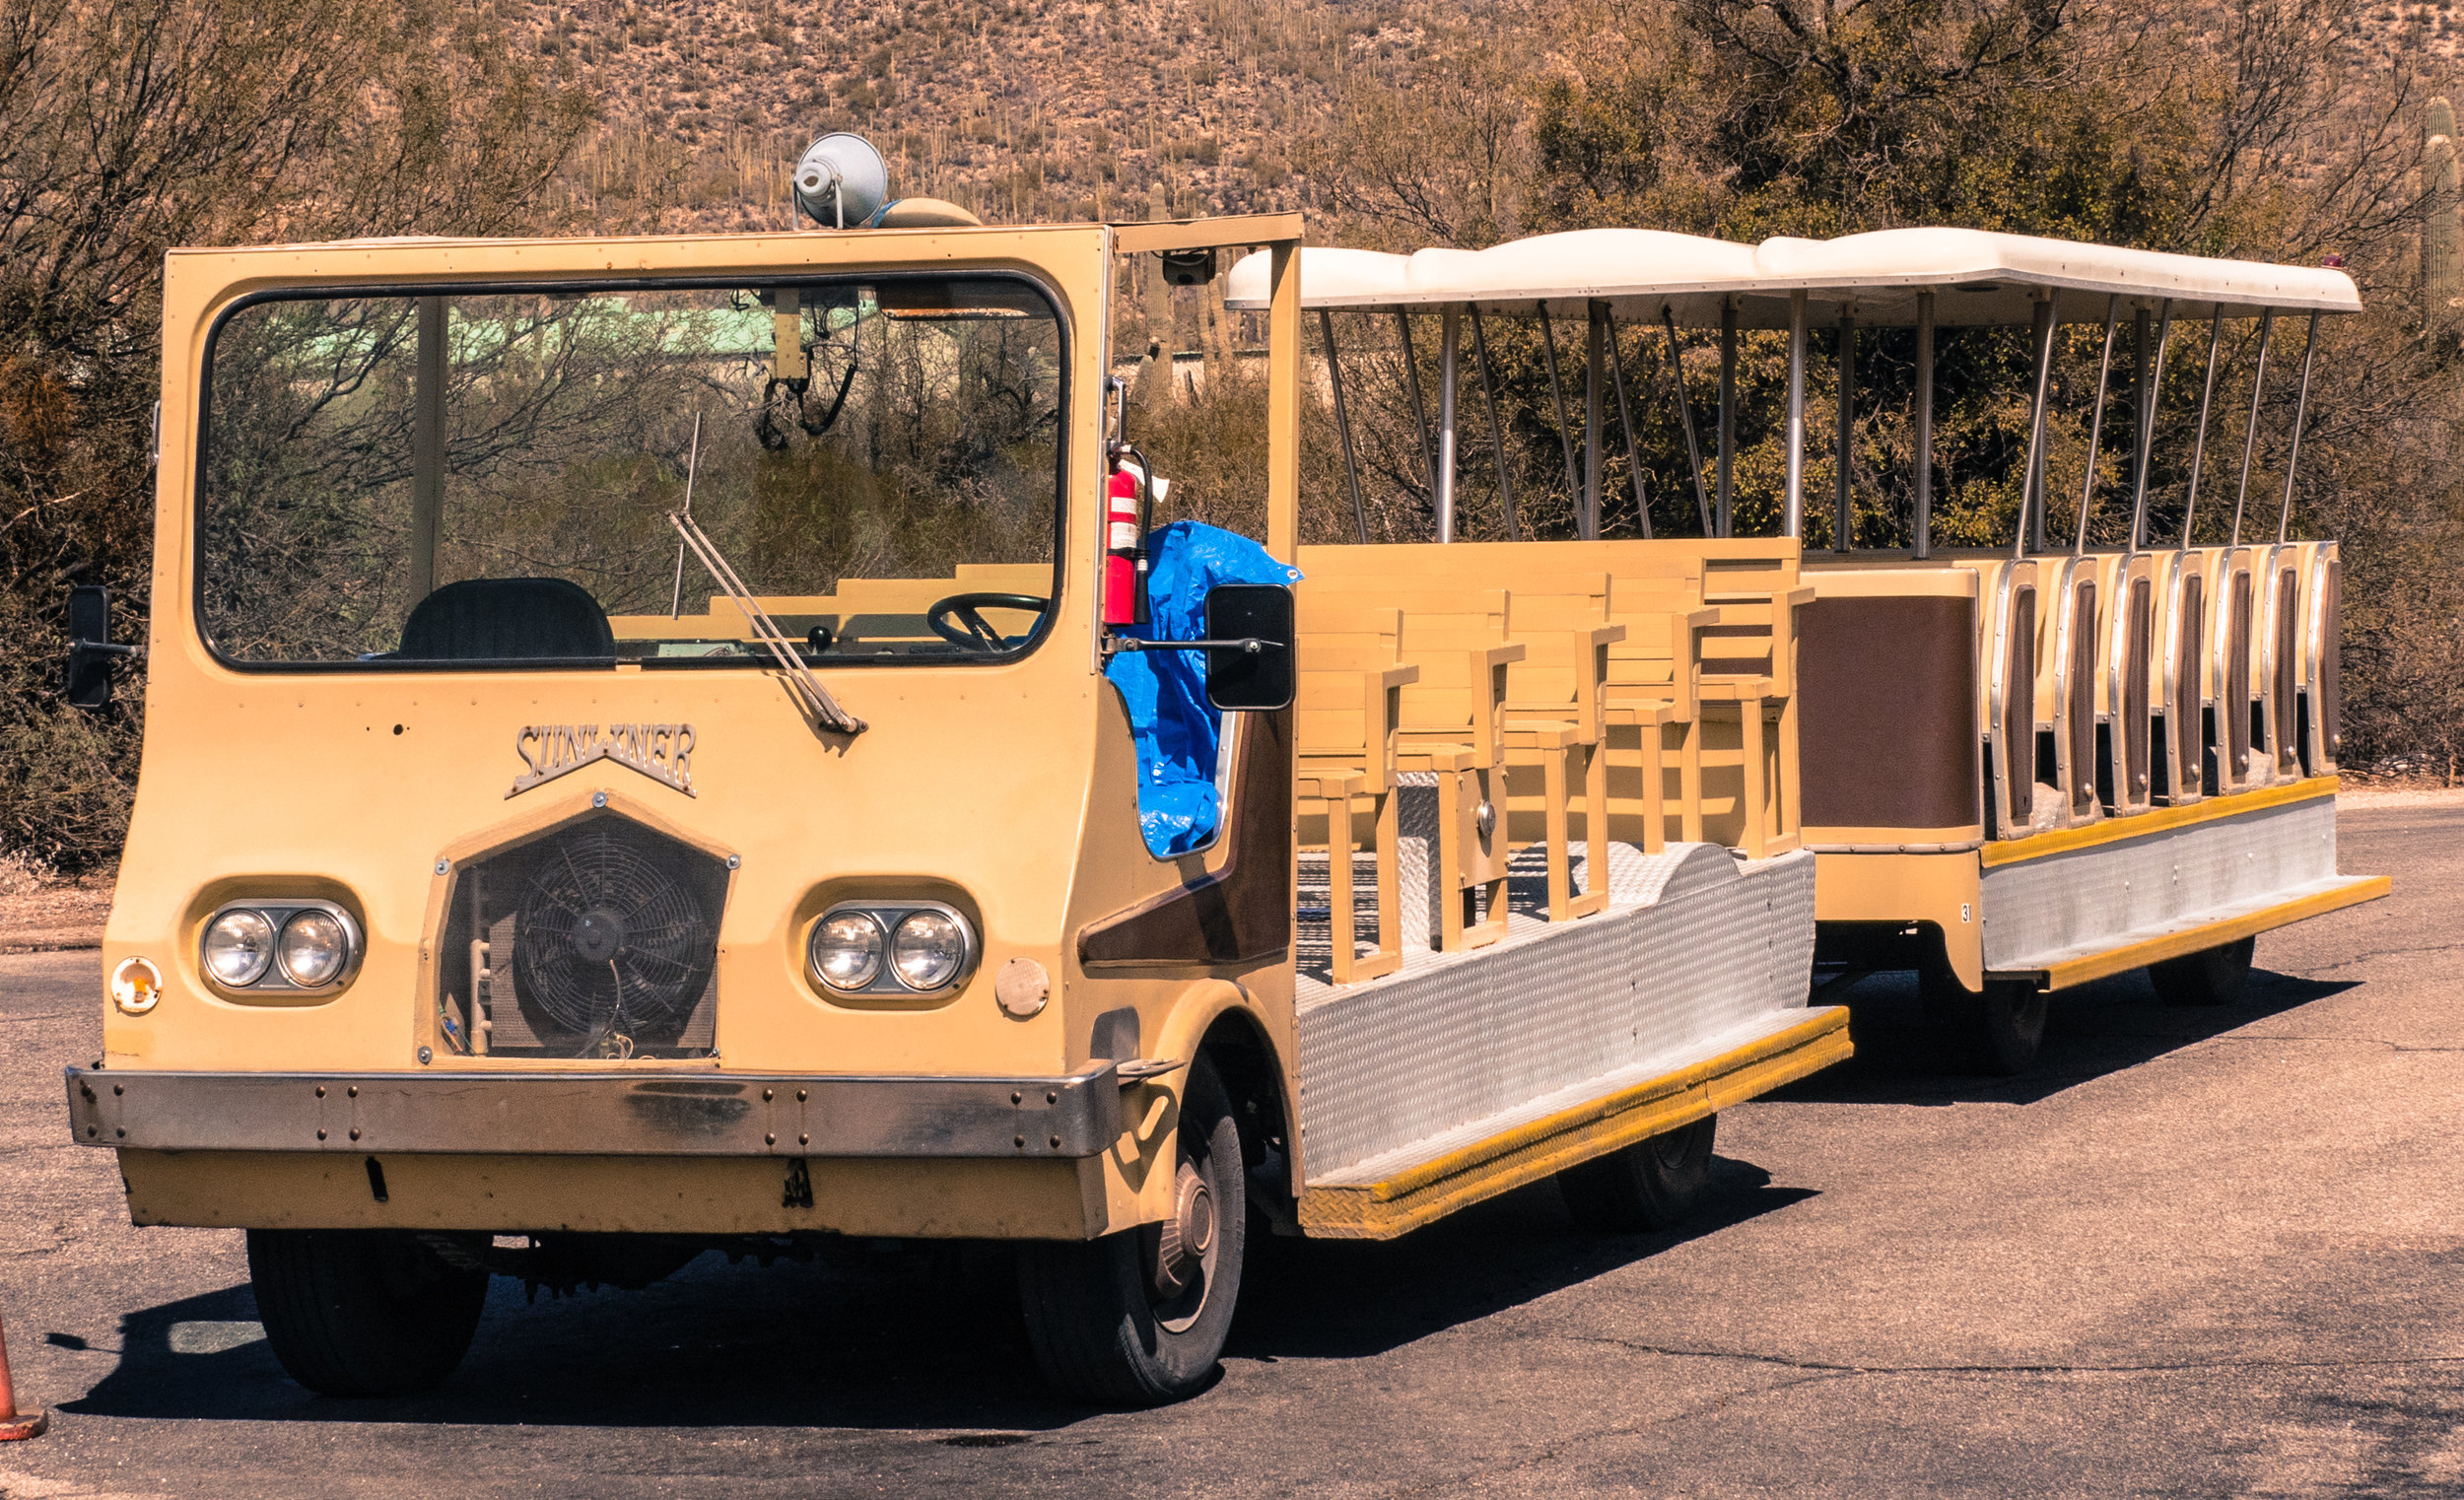 Take the tram or hike. It is all good in Sabino Canyon.